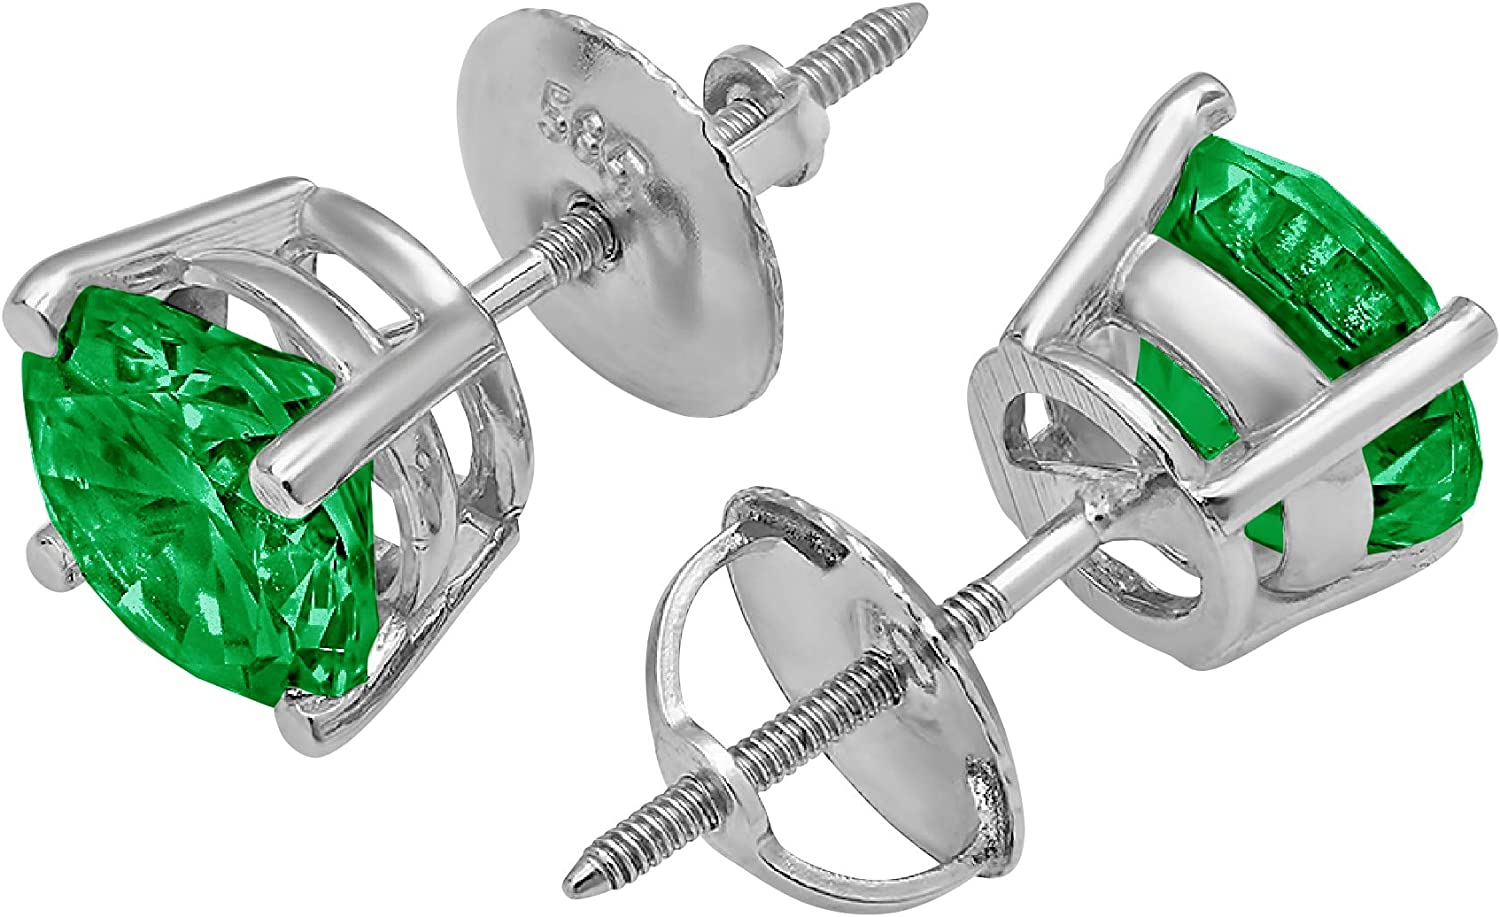 Clara Pucci 0.90 CT Brilliant Round Cut Conflict-Free VVS1 Ideal Gemstone Birthsone designer Green Fancy Color Stud Earrings Solid 14k White Gold Screw Back